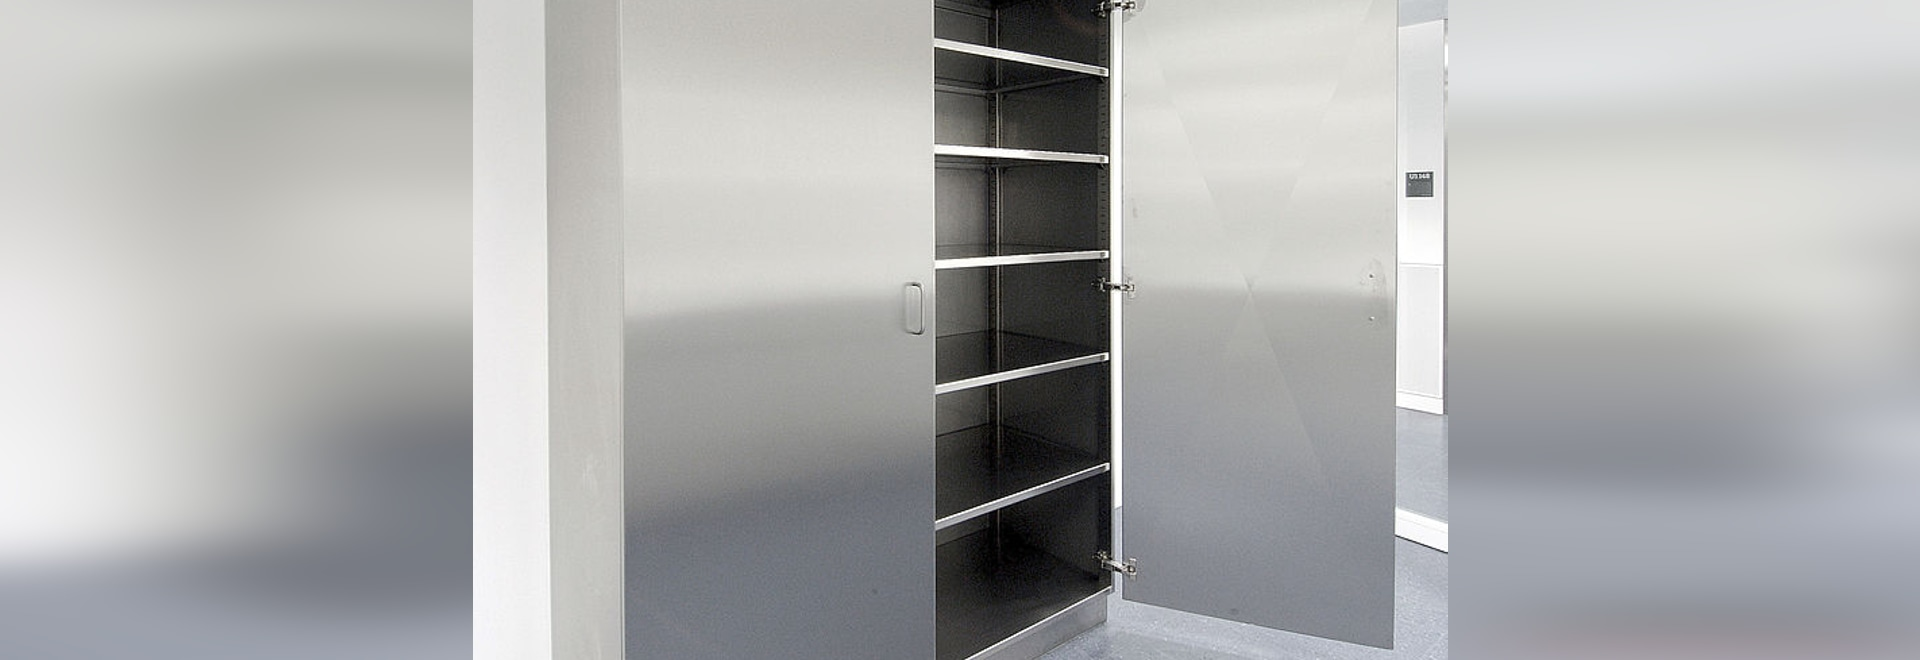 Preparation cabinet with hinged doors